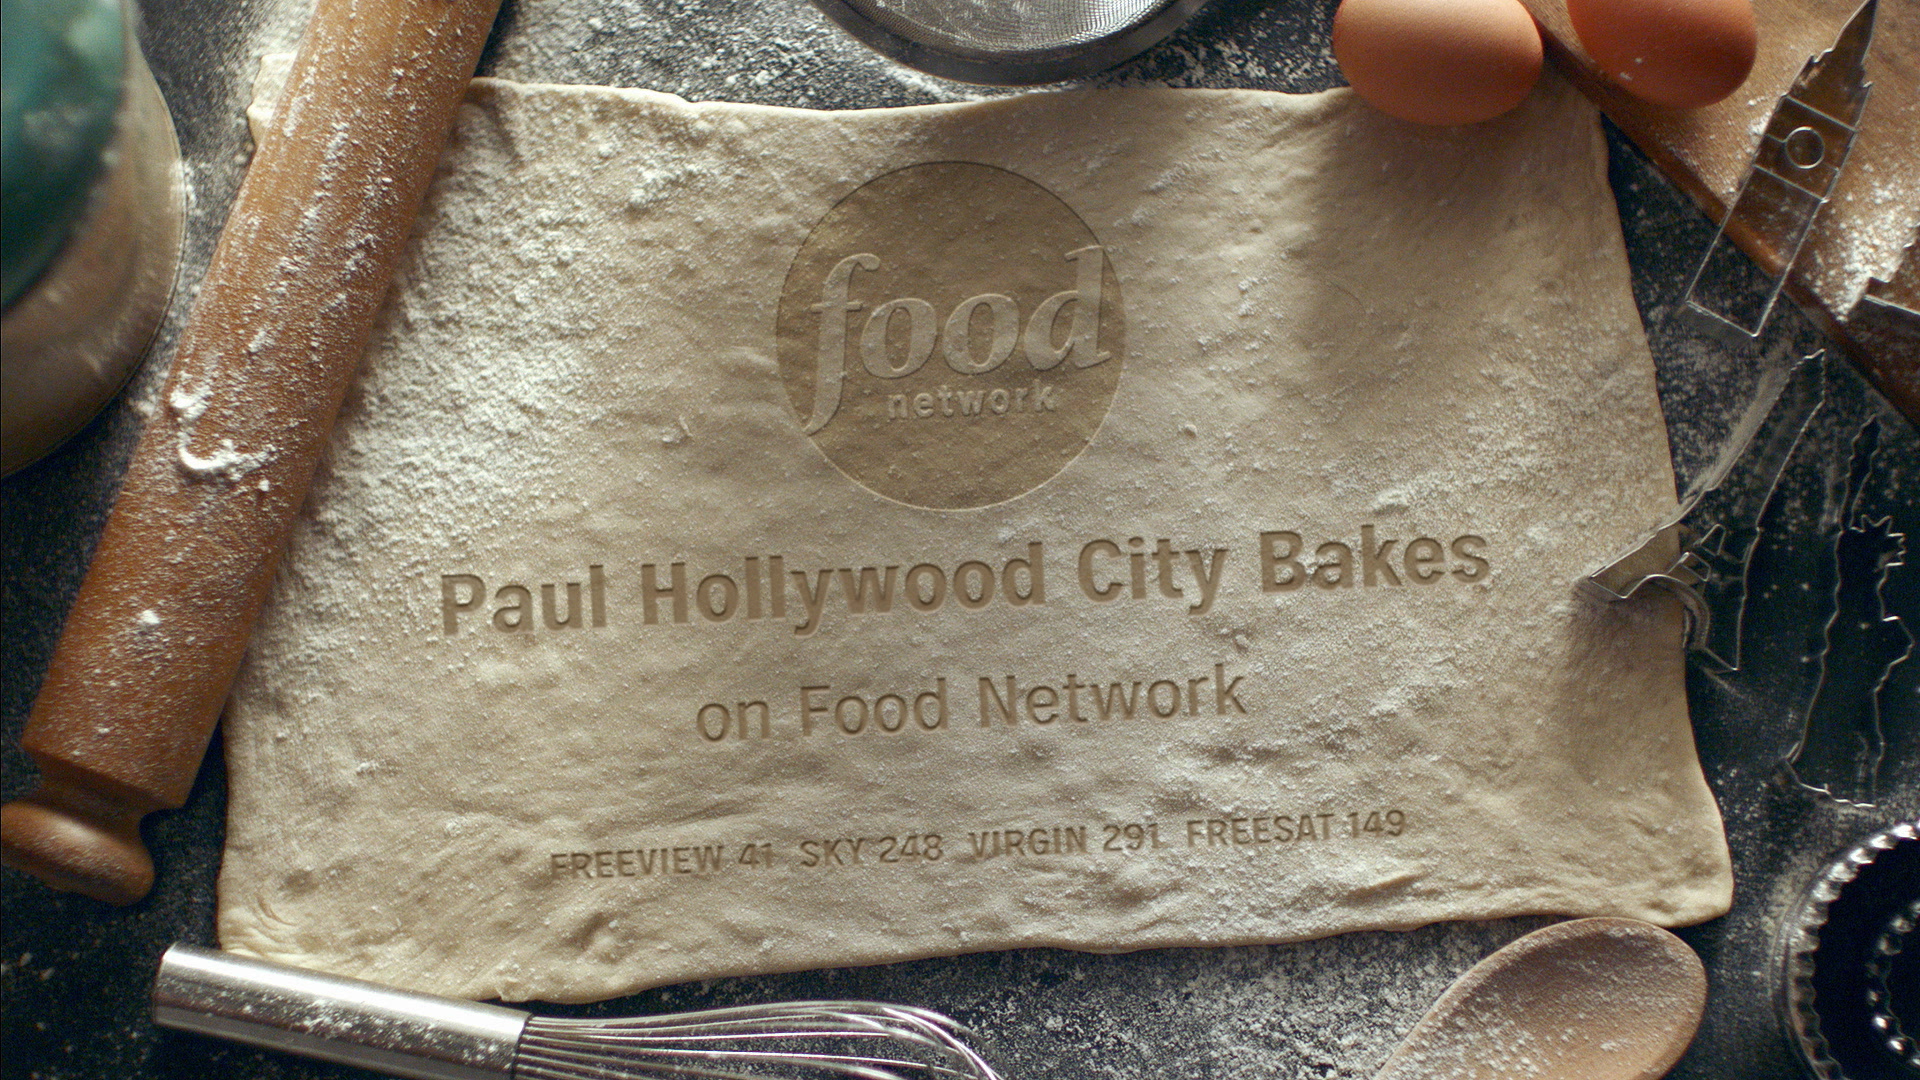 Paul Hollywood Final (10-00-29-18).jpg